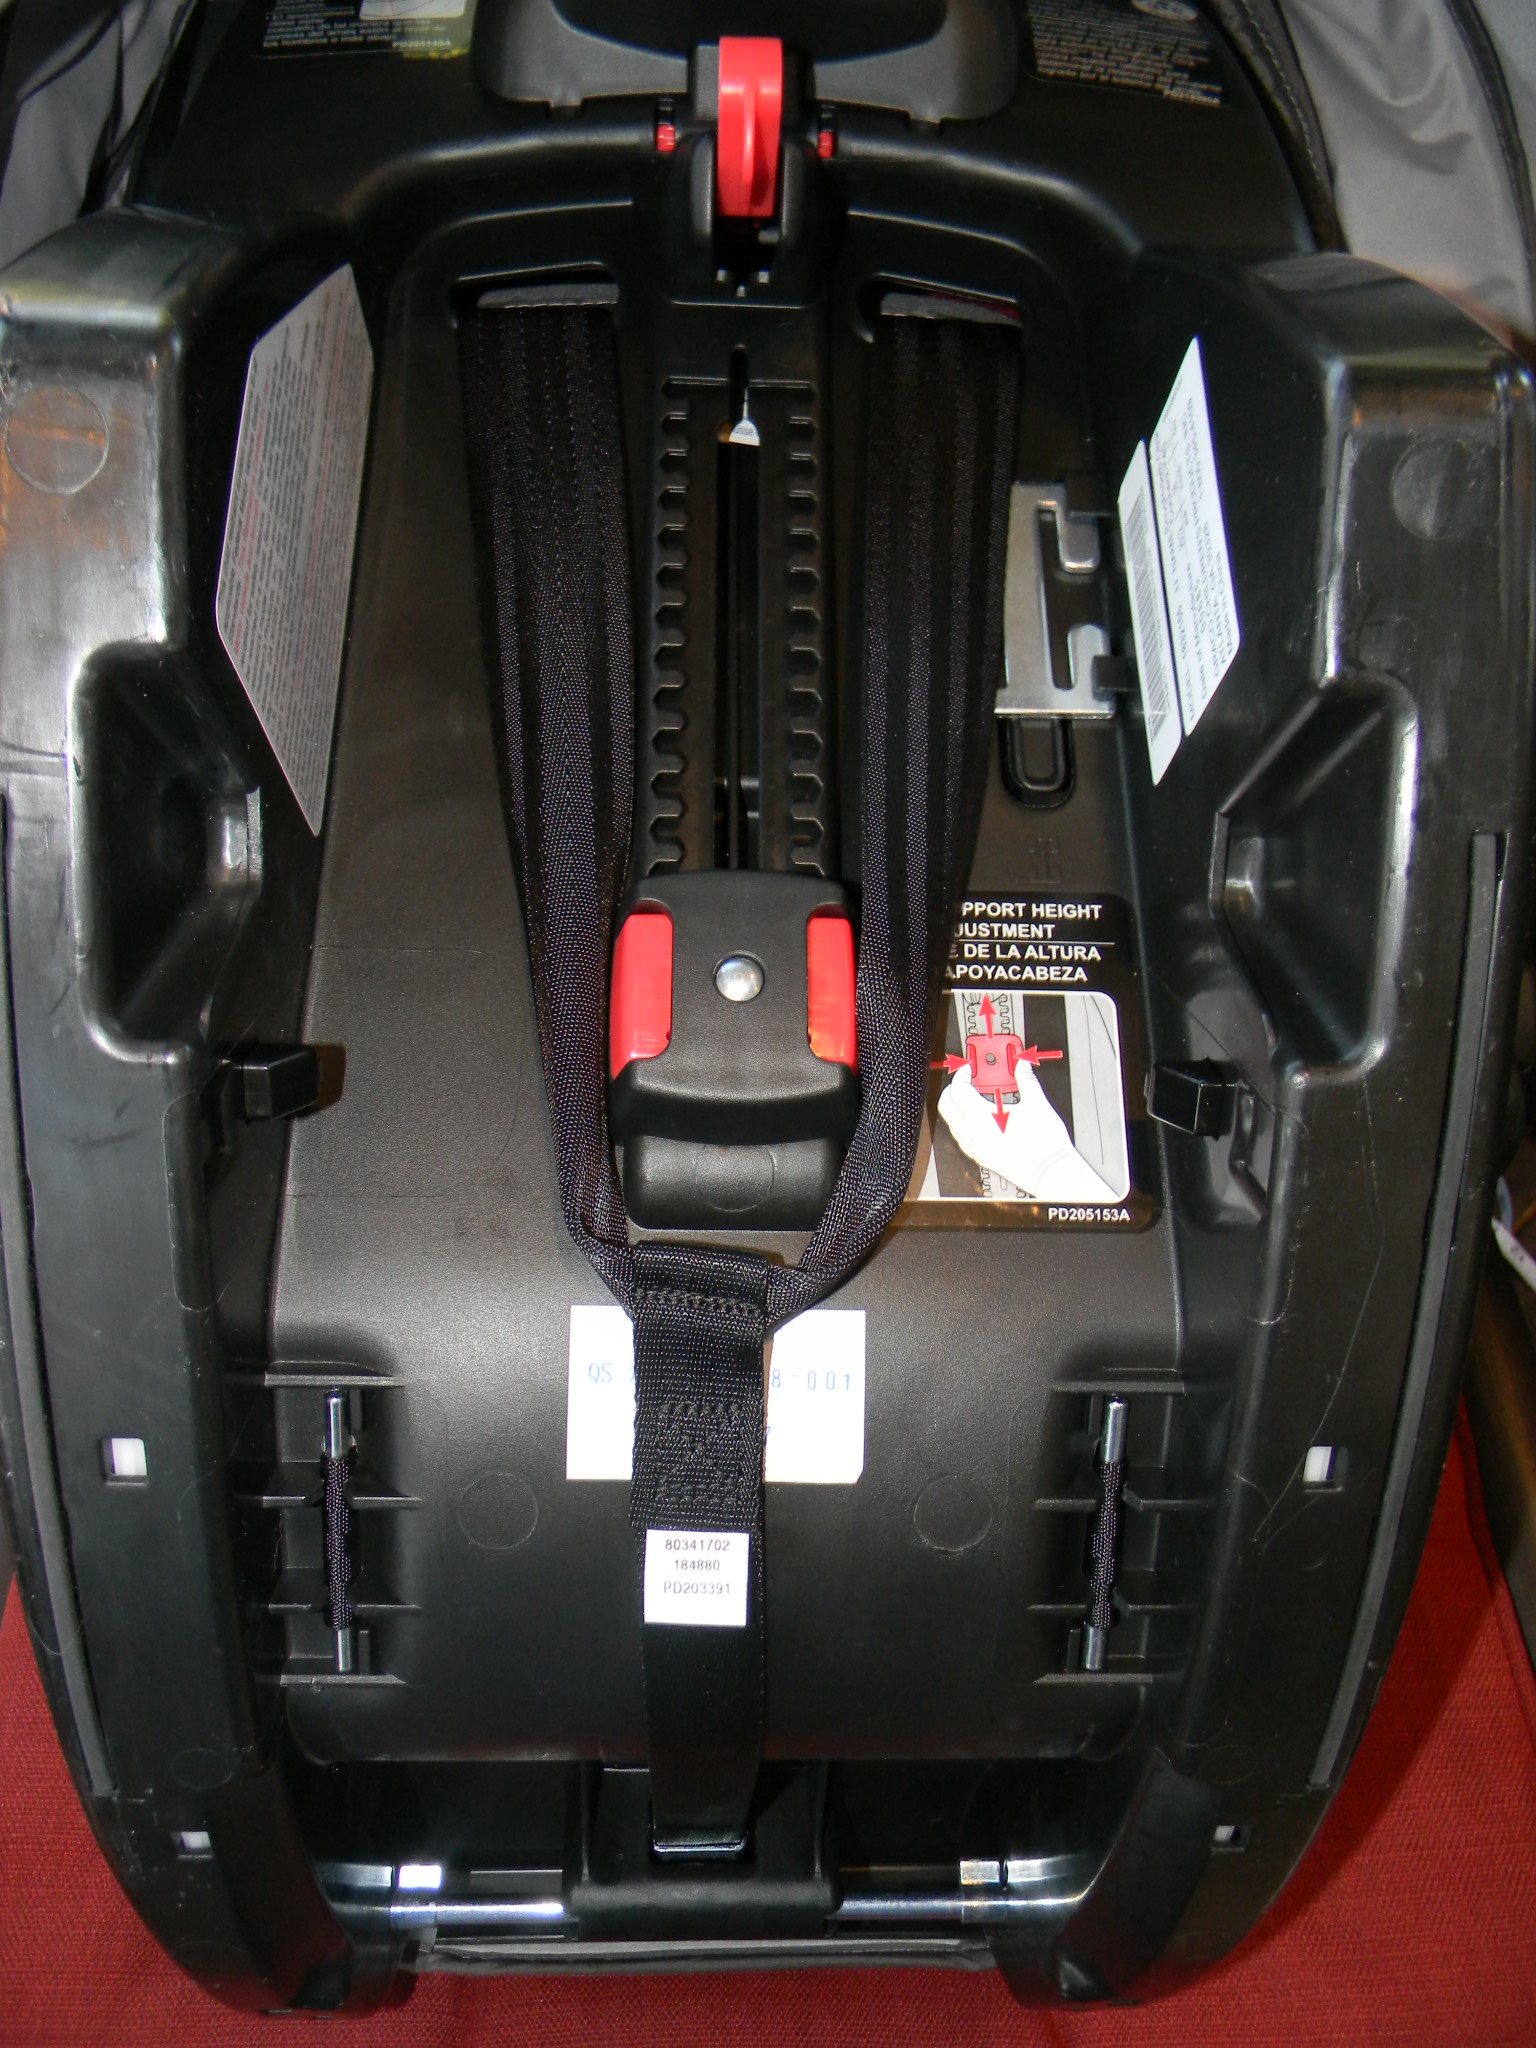 ez lock wheelchair wiring diagram origami motorcycle car seat harness straps installed get free image about